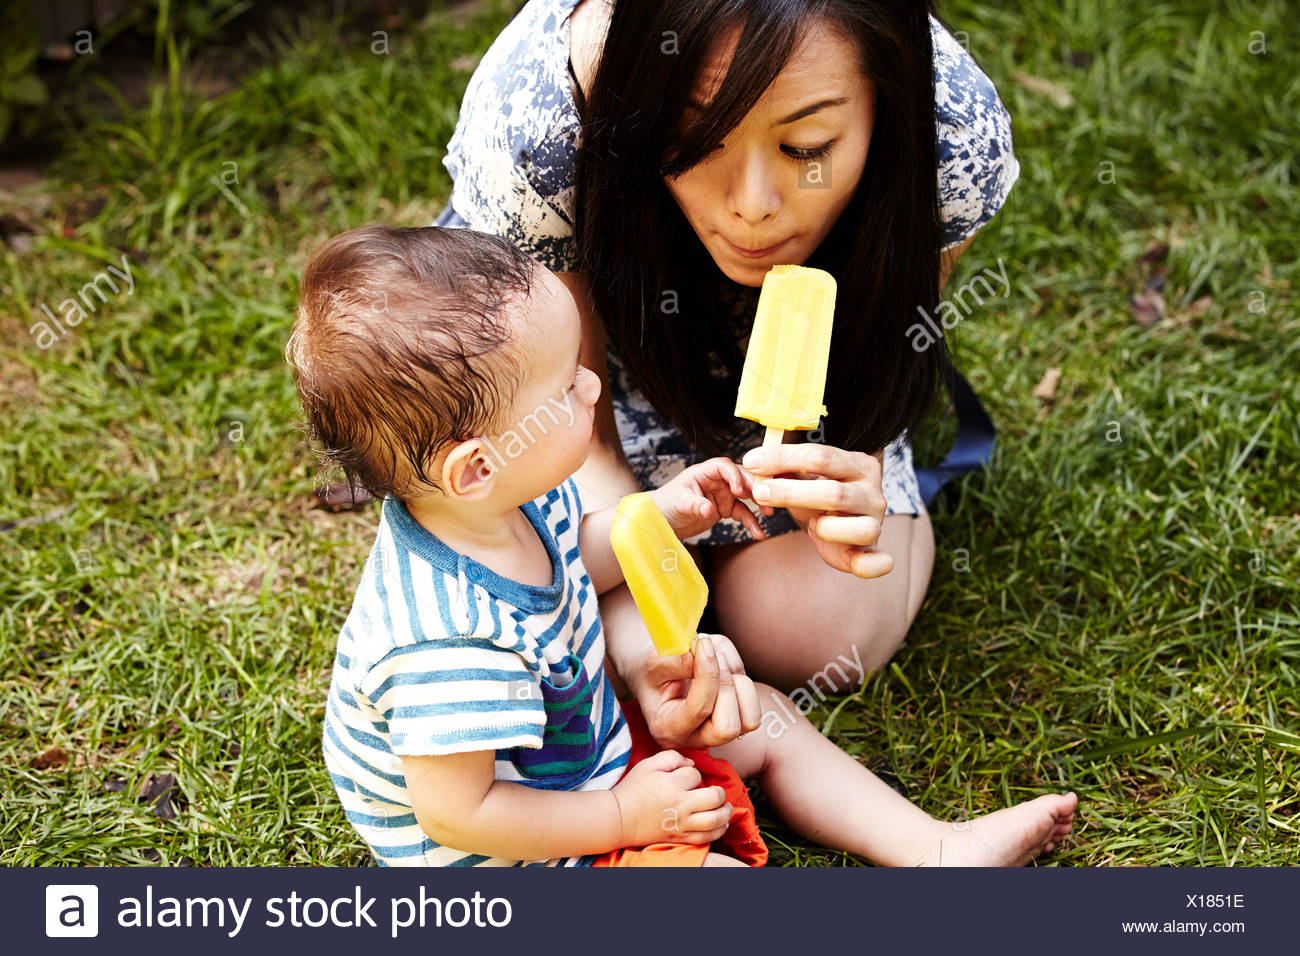 Mother and son sitting on grass eating ice lollies Stock Photo